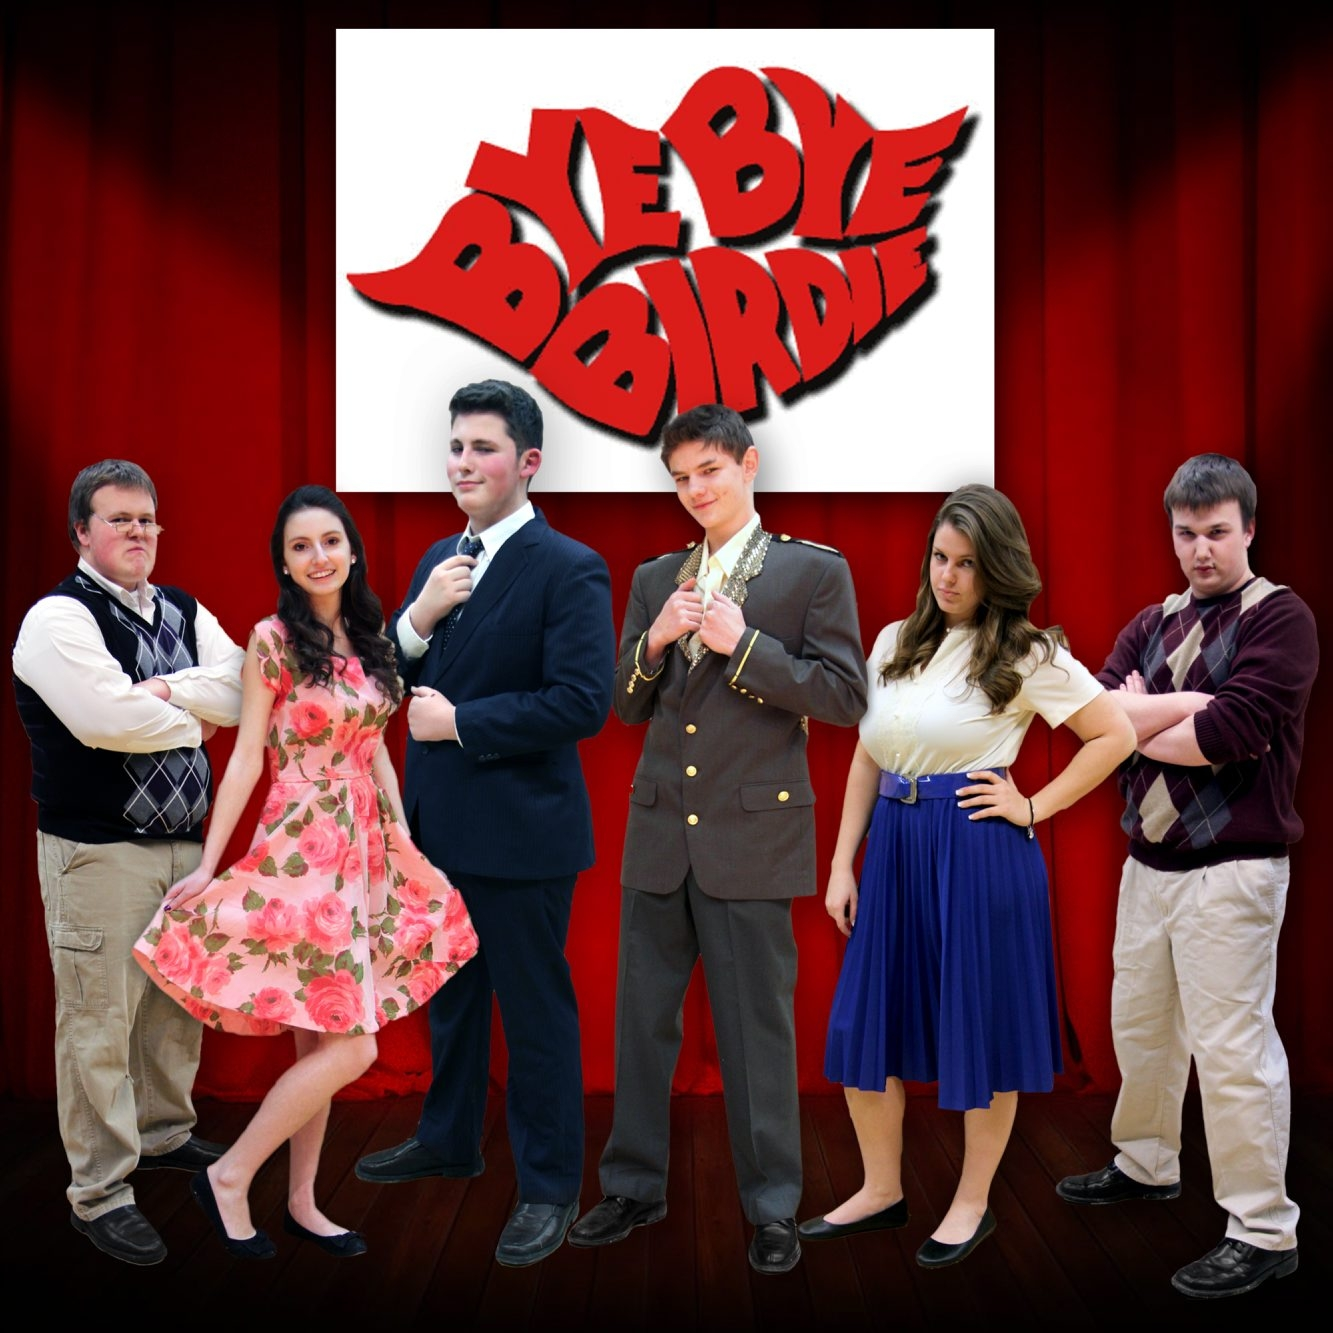 """Holland High School, 103 Canada St., Holland, will present """"Bye Bye Birdie"""" at 7:30 p.m. Friday and Saturday and 2 p.m. Sunday. Tickets are $8; $6 for Sunday show. Pictured, from left, are Abe Stroka, Madison Hanel, John Steiner, Kolby Reumann, Ashley O'Connor and Wyatt Gilbert."""